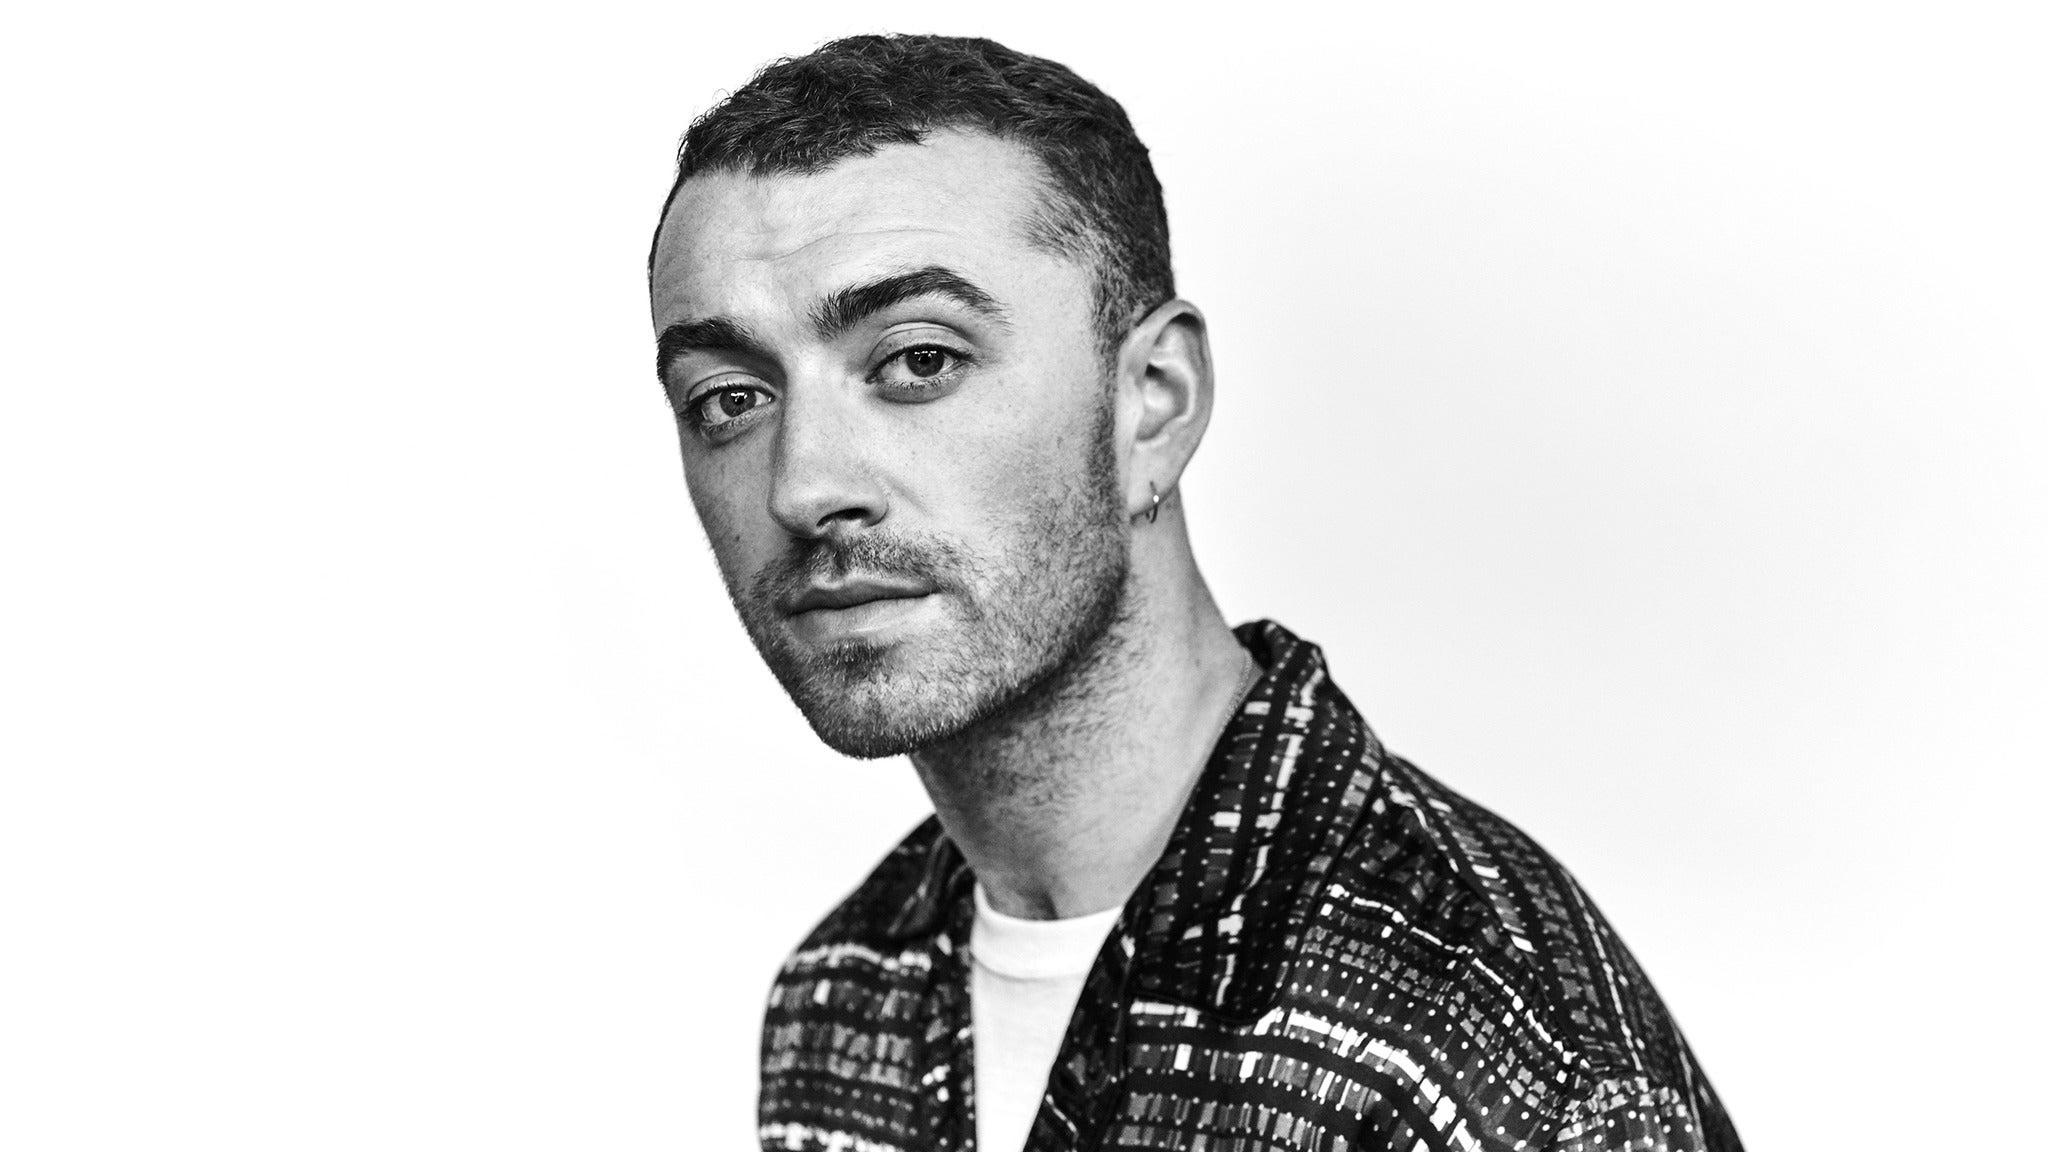 Sam Smith's New Single Will Make You Feel Love